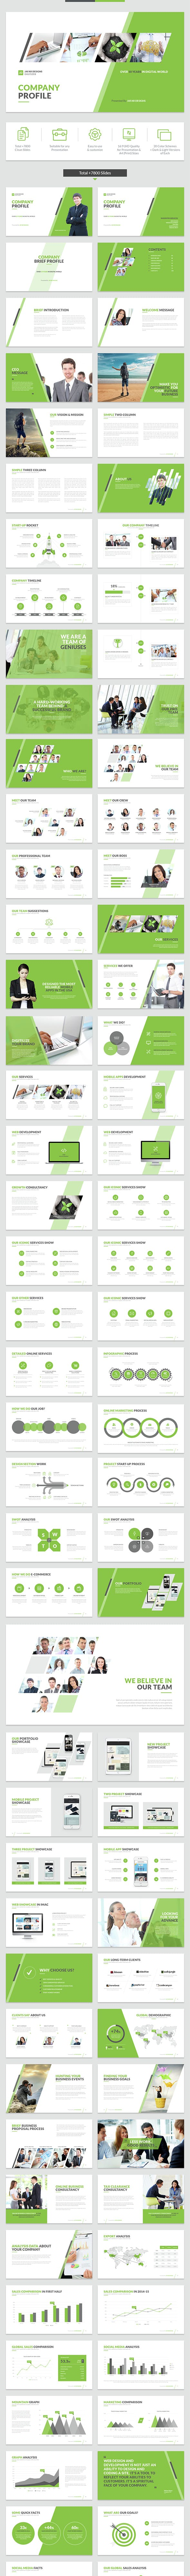 Company Profile Powerpoint Template By Jafardesigns Graphicriver